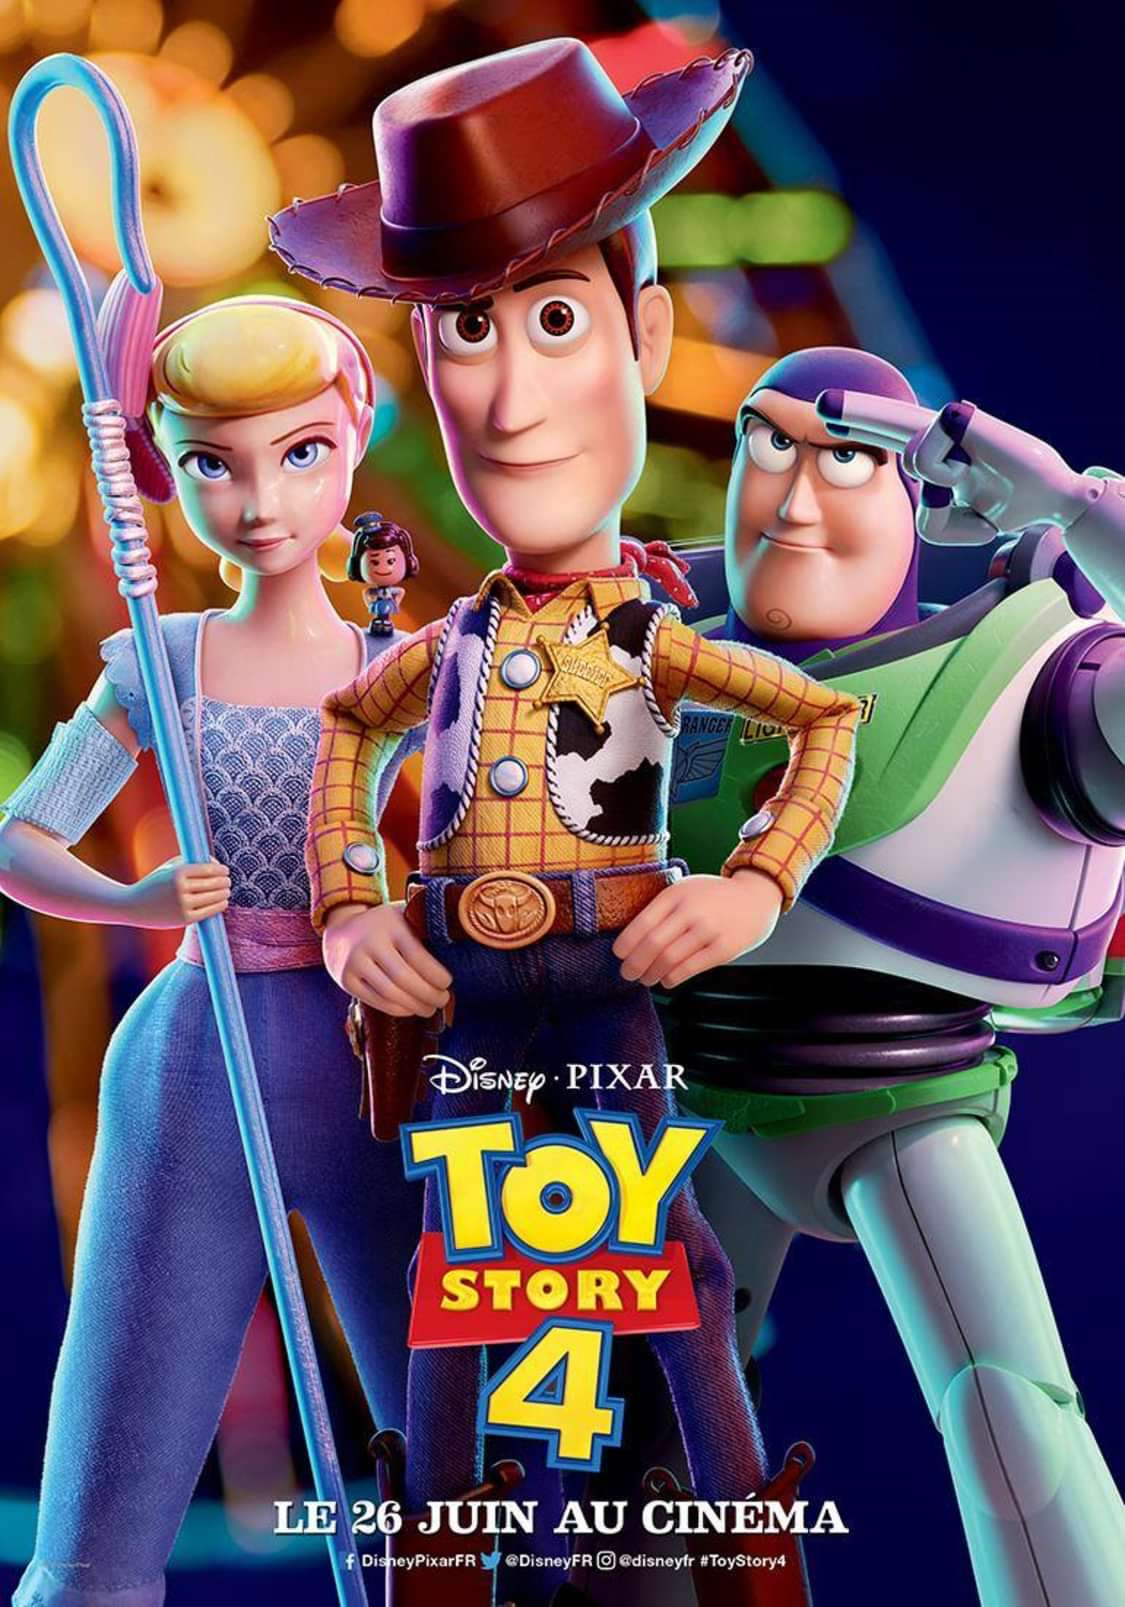 Toy story 4 wiki pixar fandom powered by wikia - Cochon de toy story ...